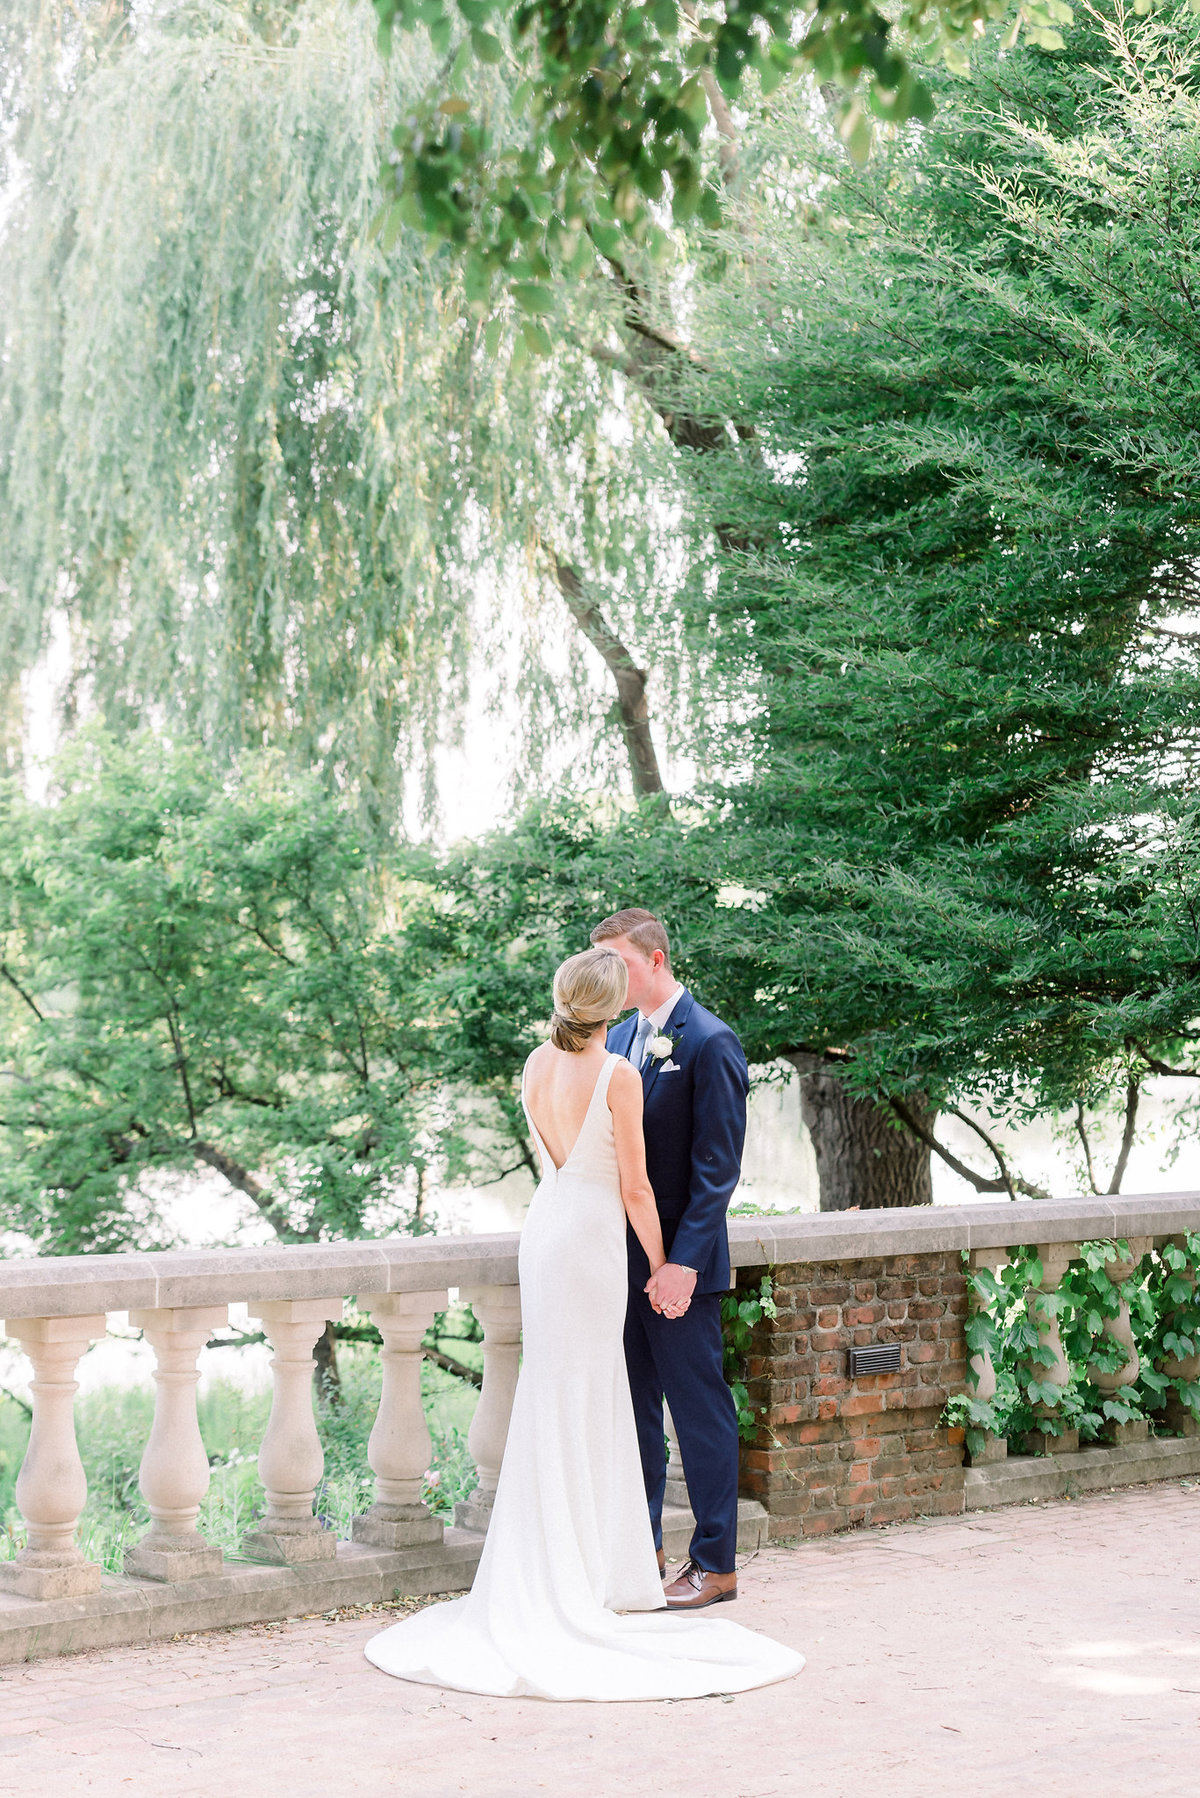 TiffaneyChildsPhotography-ChicagoWeddingPhotographer-Micheala+Tommy-ChicagoBotanicGardenWedding-BridalPortraits-70